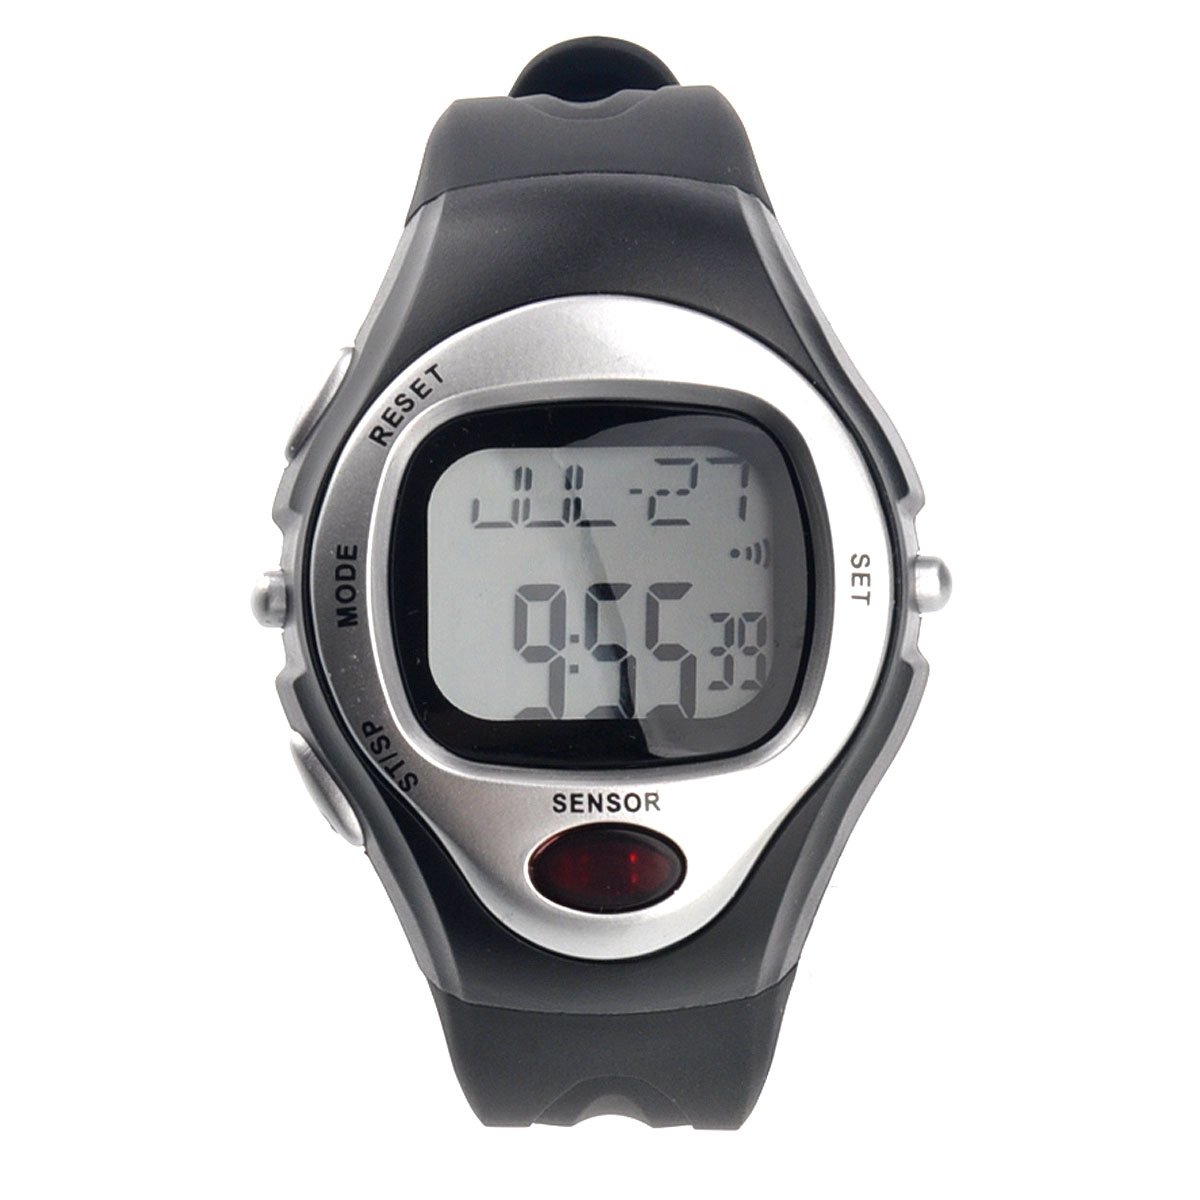 Super sell R022M Waterproof Sports Pulse Rate Monitor Counter Digital (Silver)